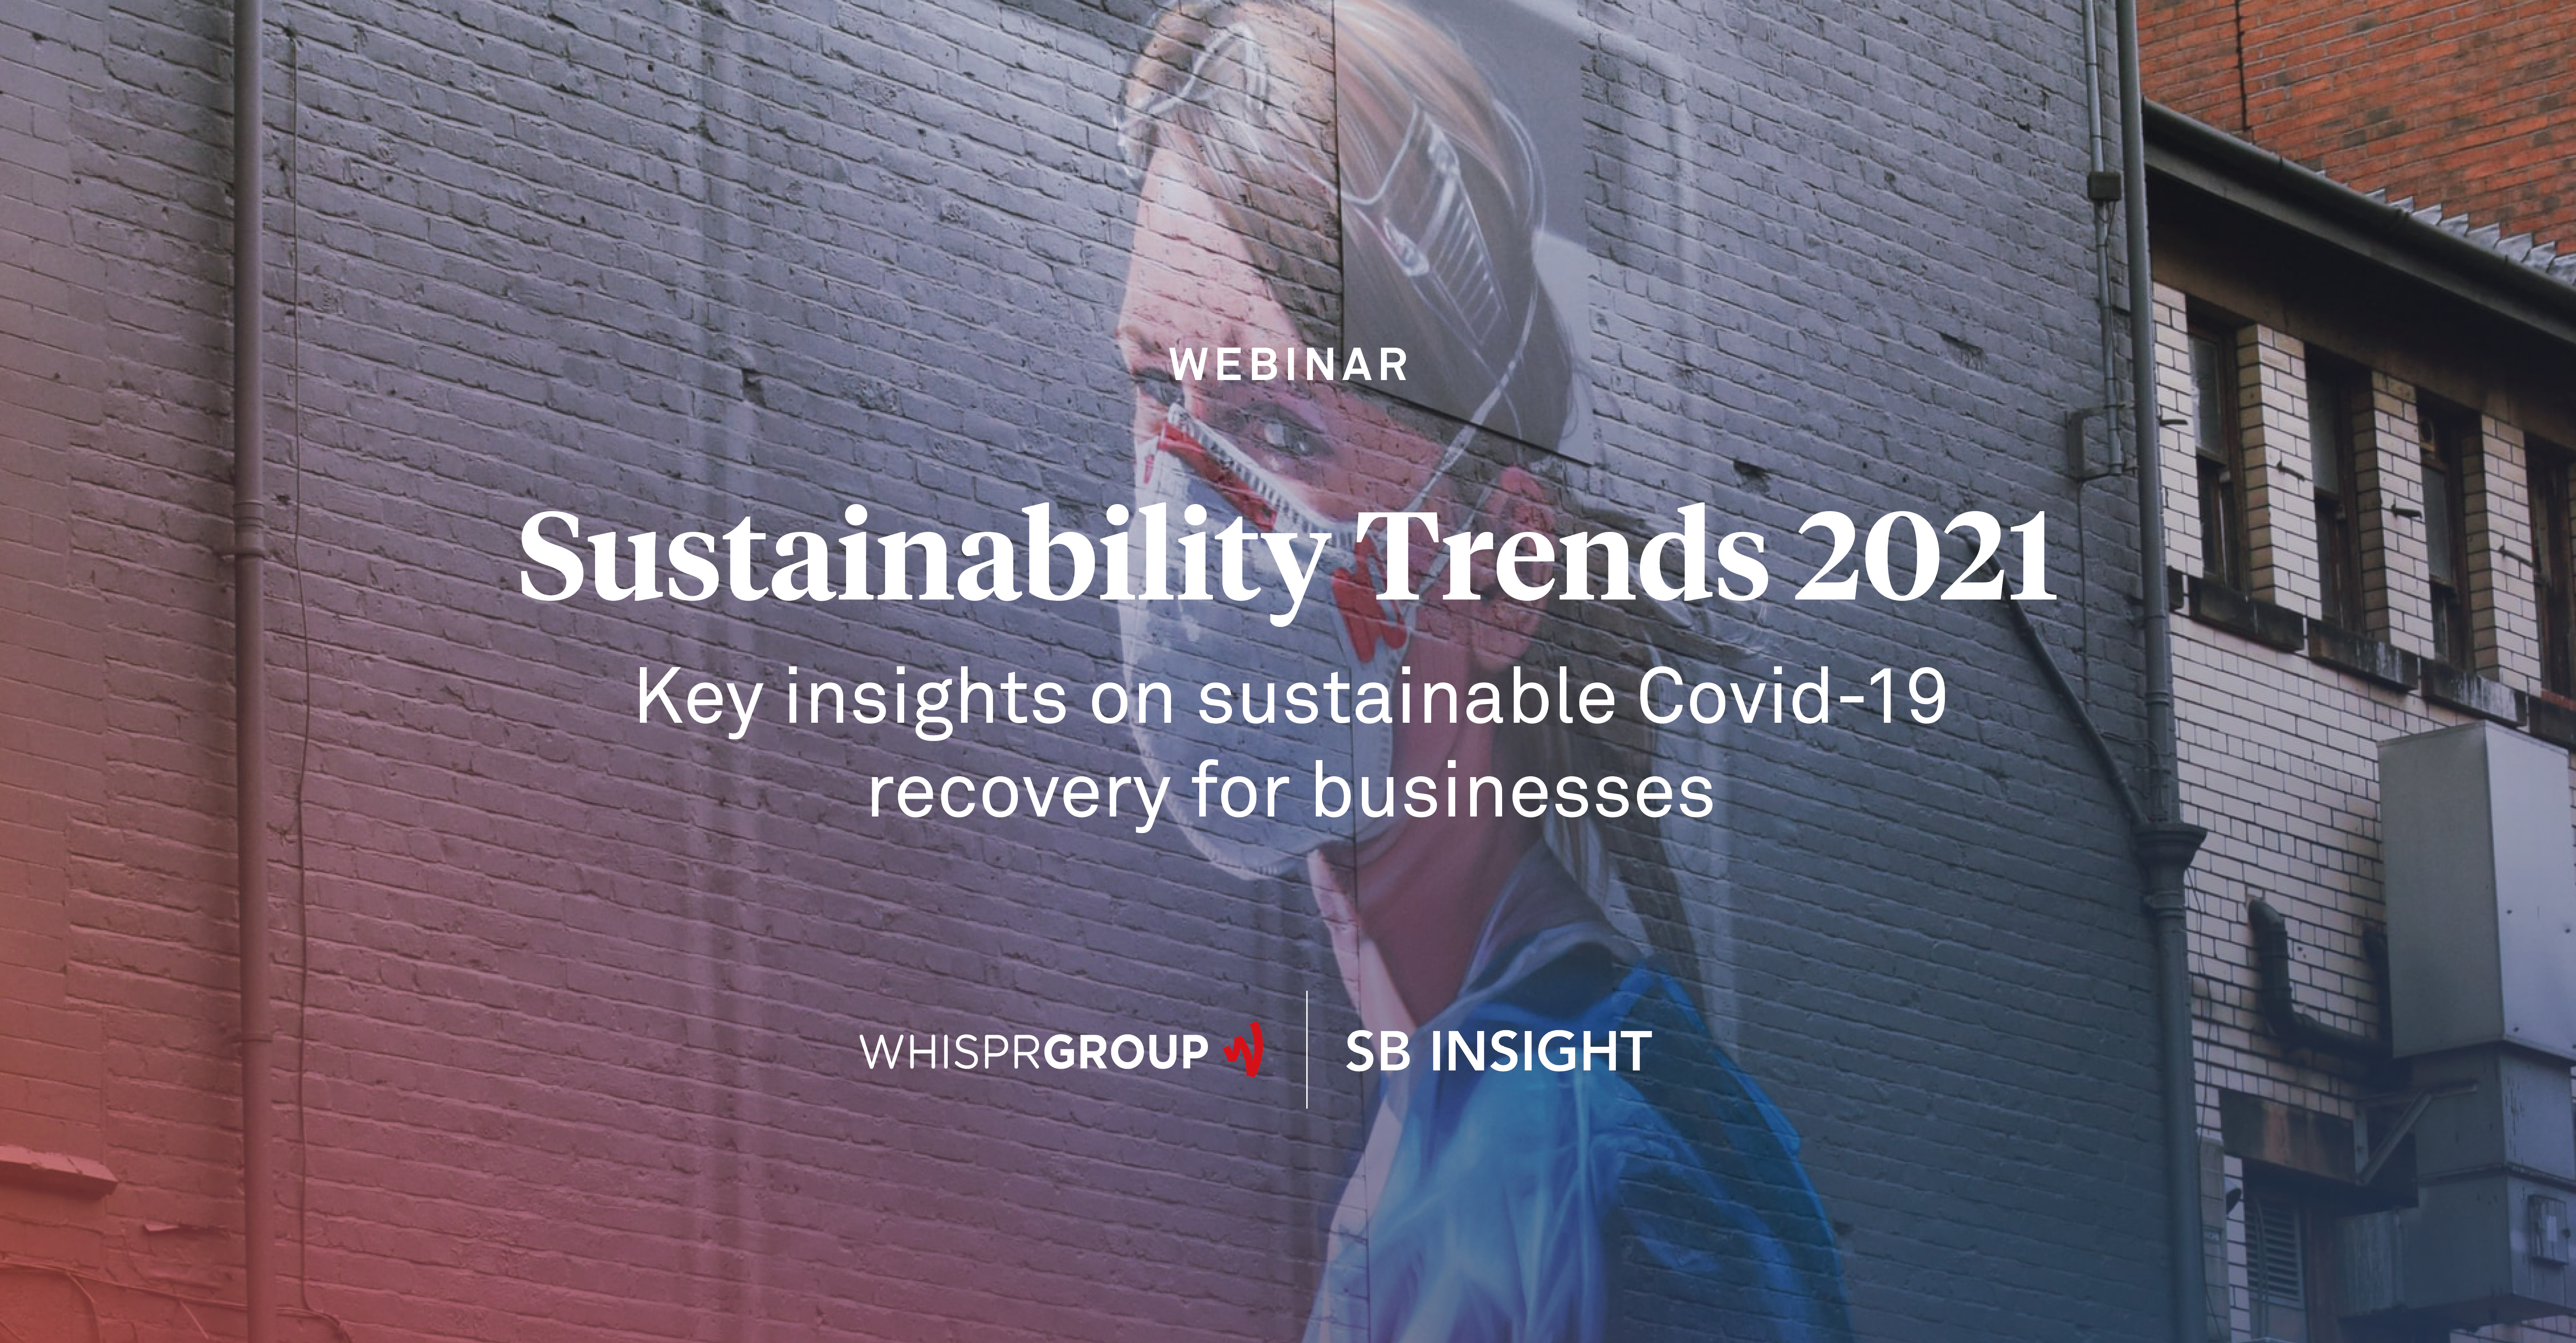 How does the sustainable consumer look in 2021? And how do we navigate a green covid-19 recovery?